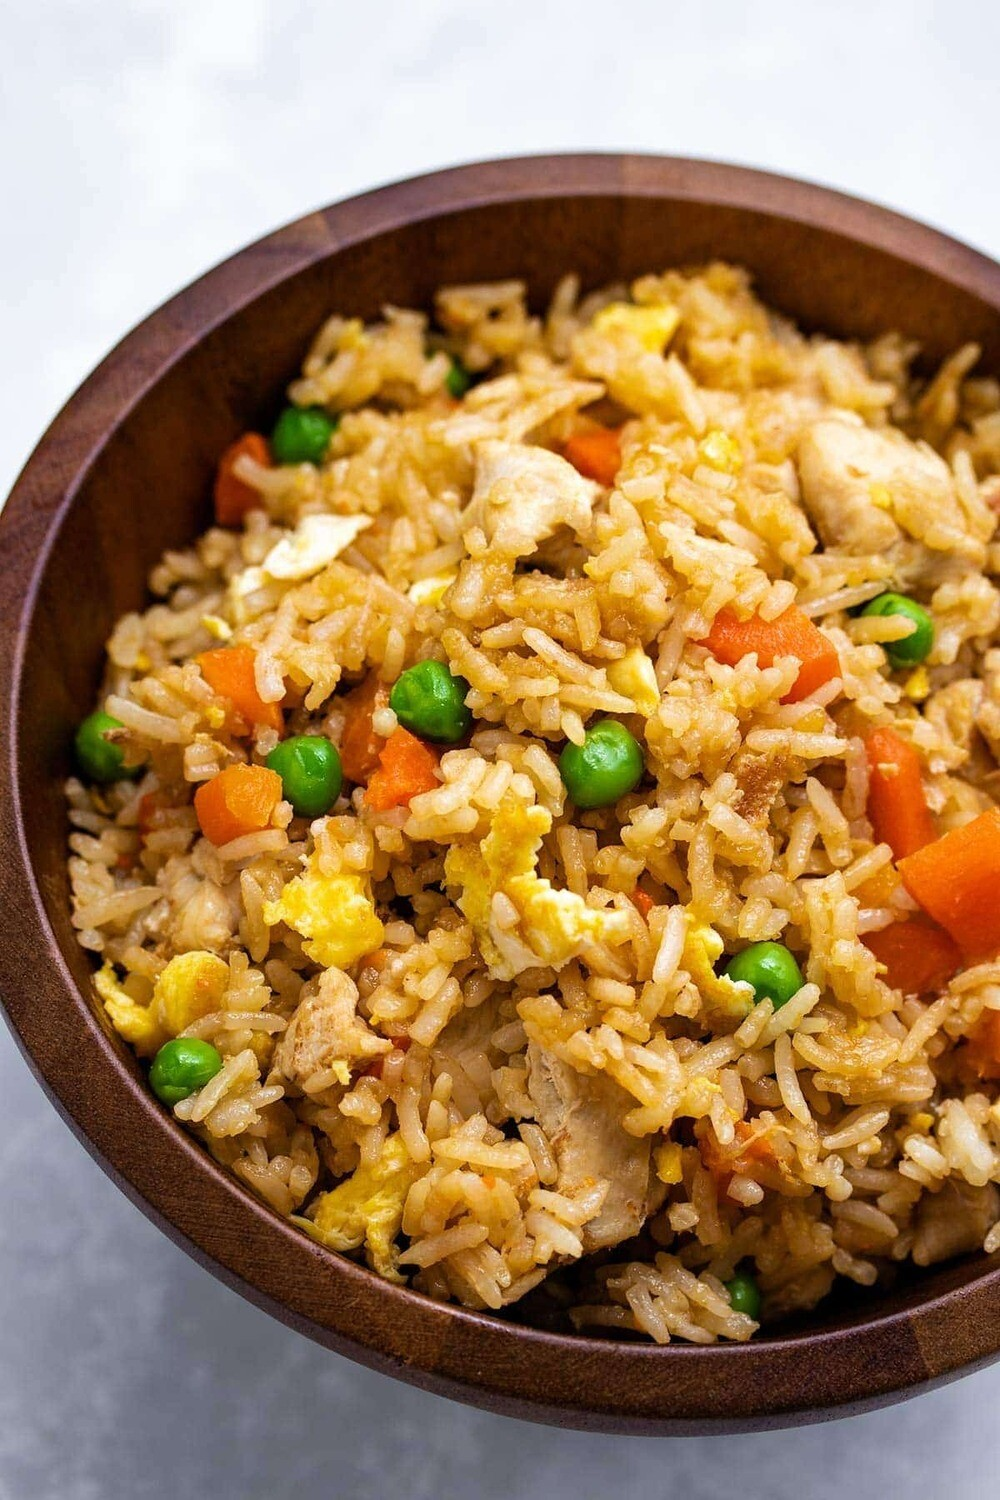 Thai Fried Rice & Chicken Larb / Wednesday, February 3 @ 6:30pm